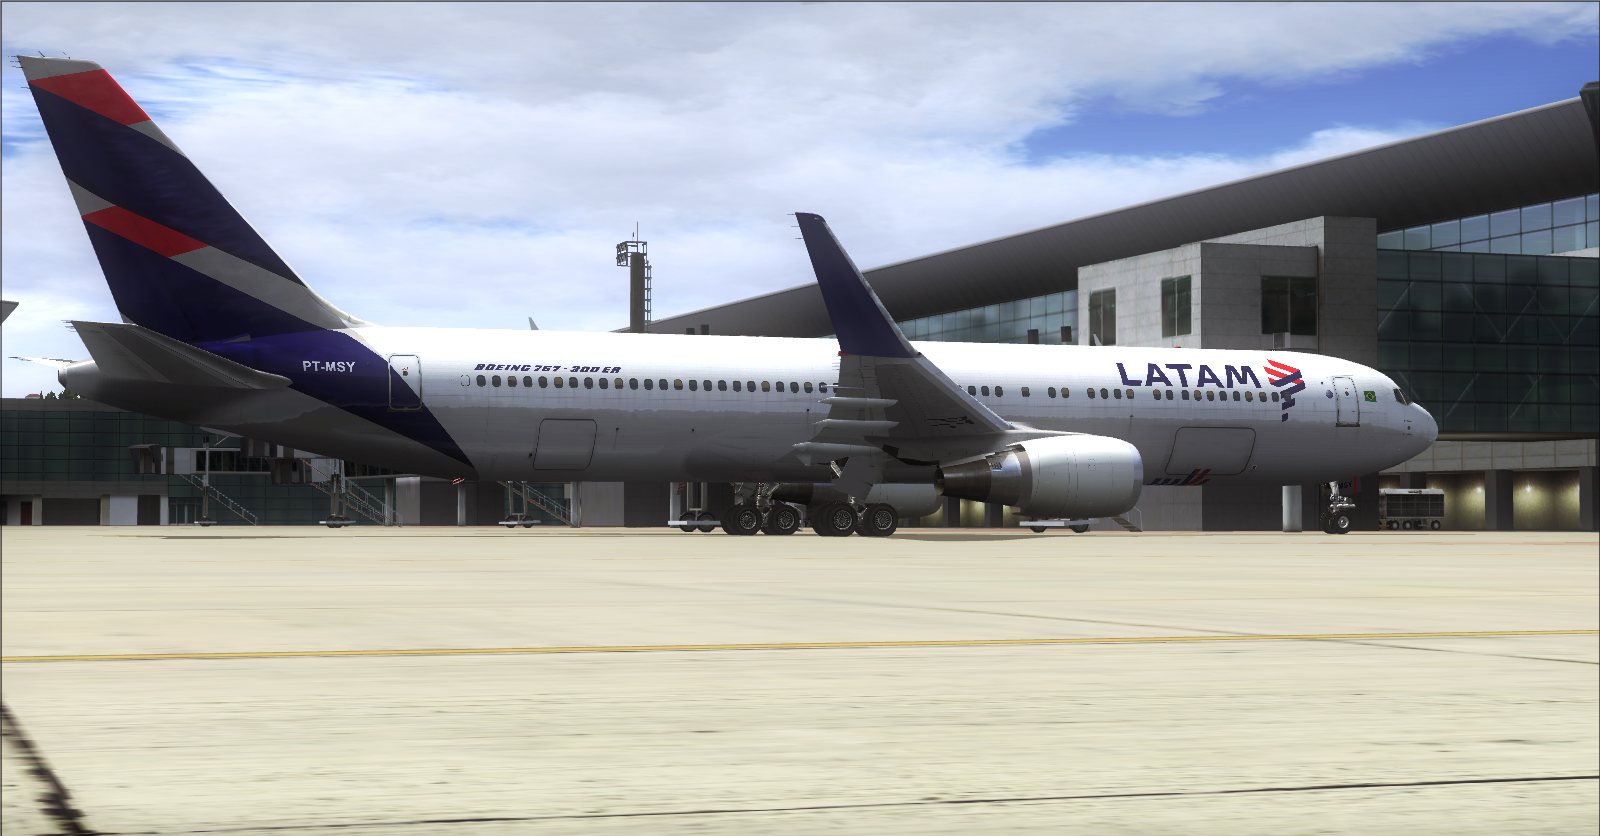 [FS2004] LATAM Airlines Boeing 767-300ER PT-MSY Level-D ...